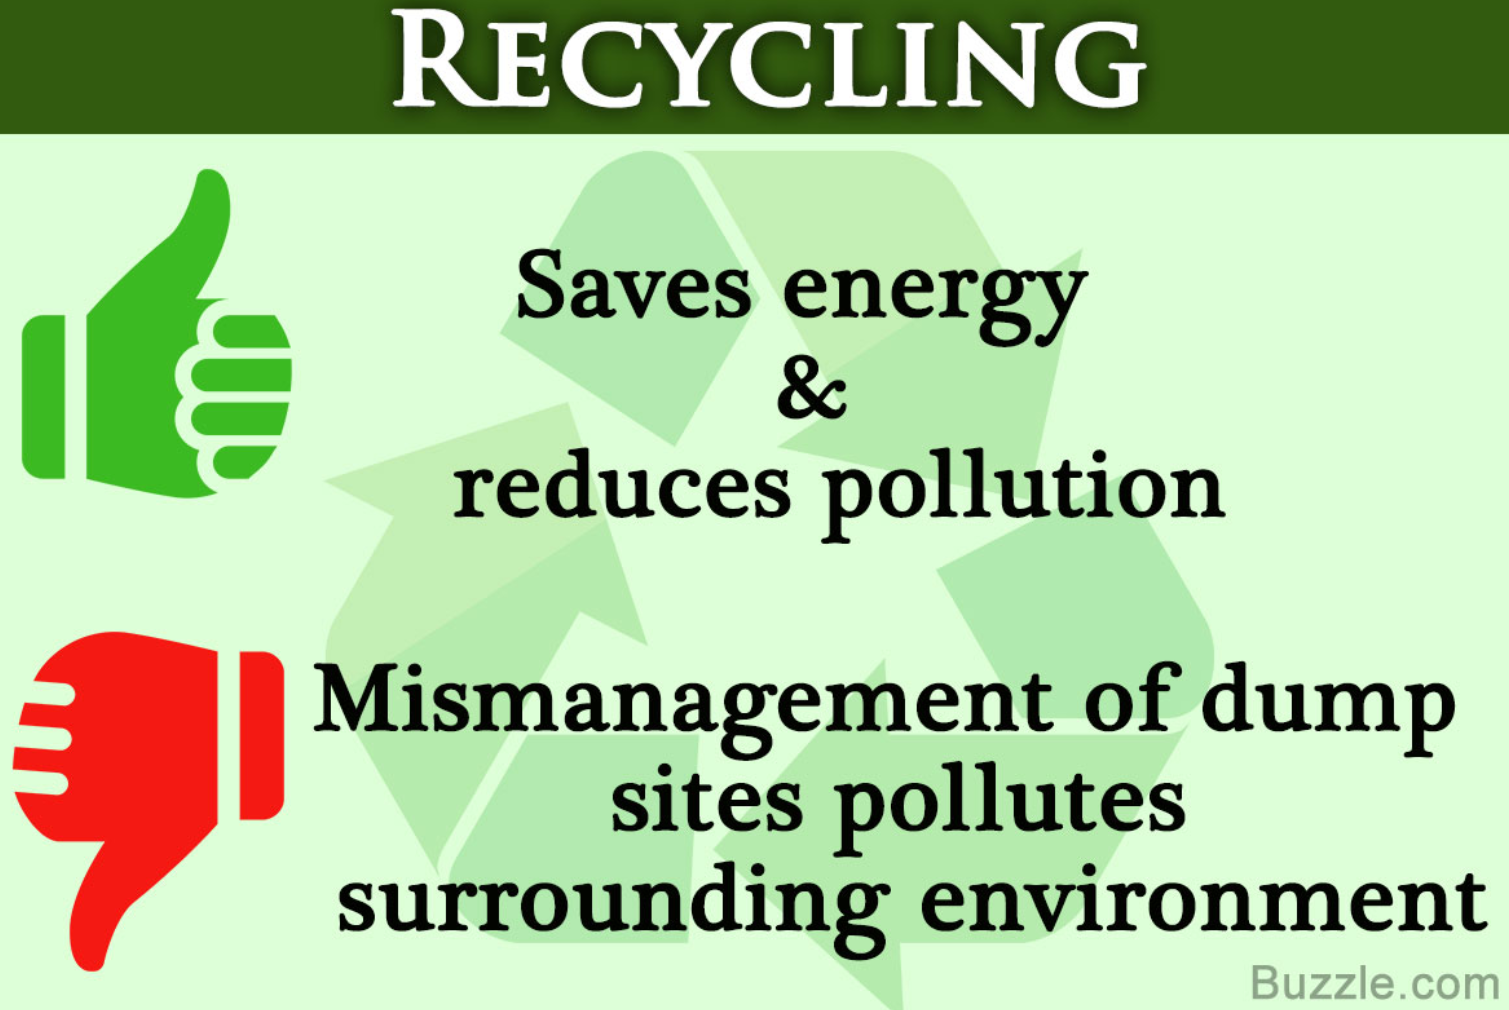 Picture Listing the Benefits of Recycling - Saves energy and reduces pollution